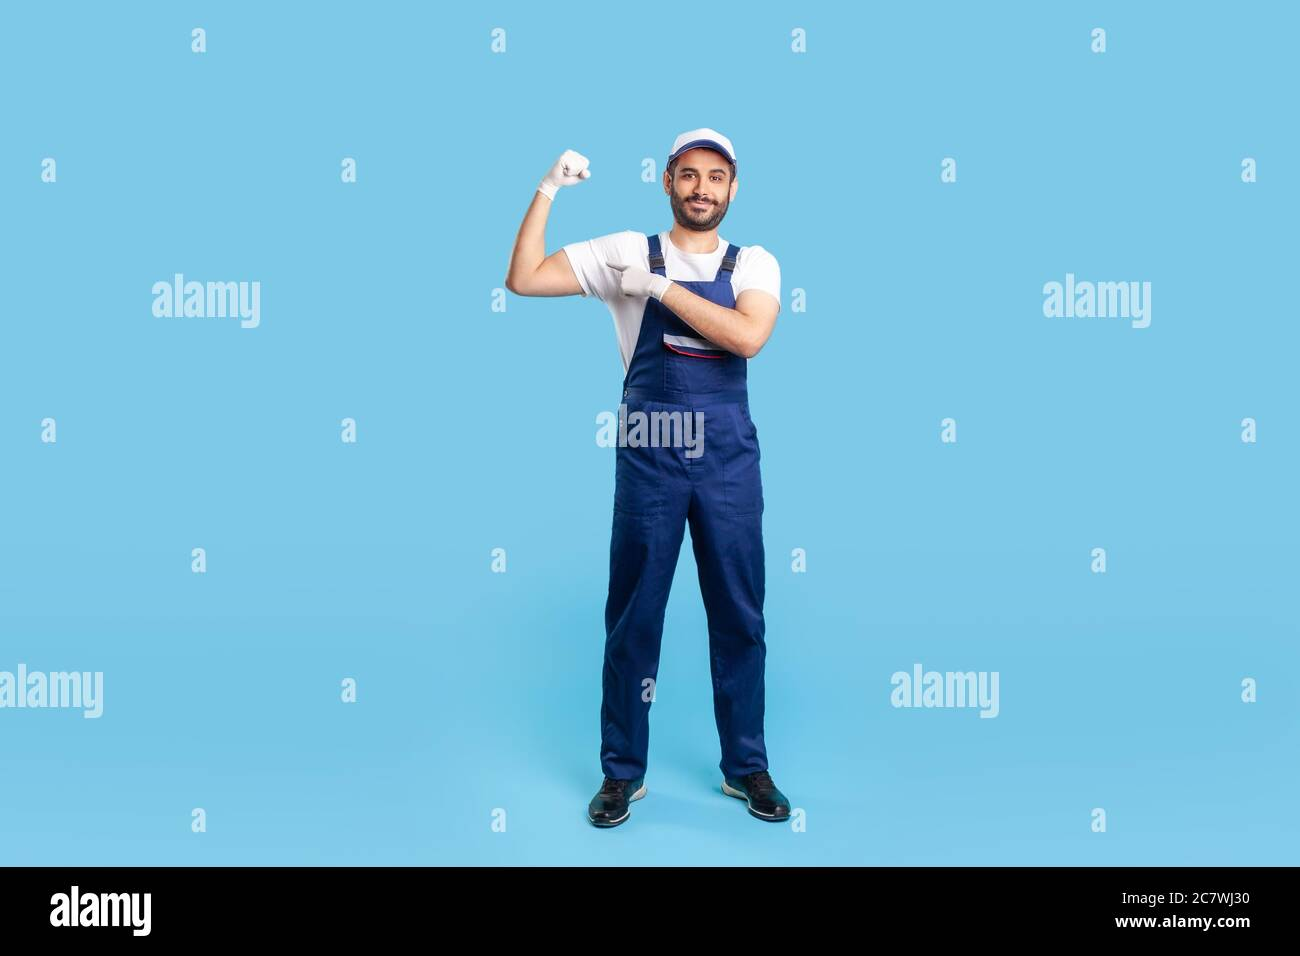 Full length happy expert handyman in blue overalls, cap and protective gloves pointing biceps, demonstrating strength. Profession of service industry, Stock Photo